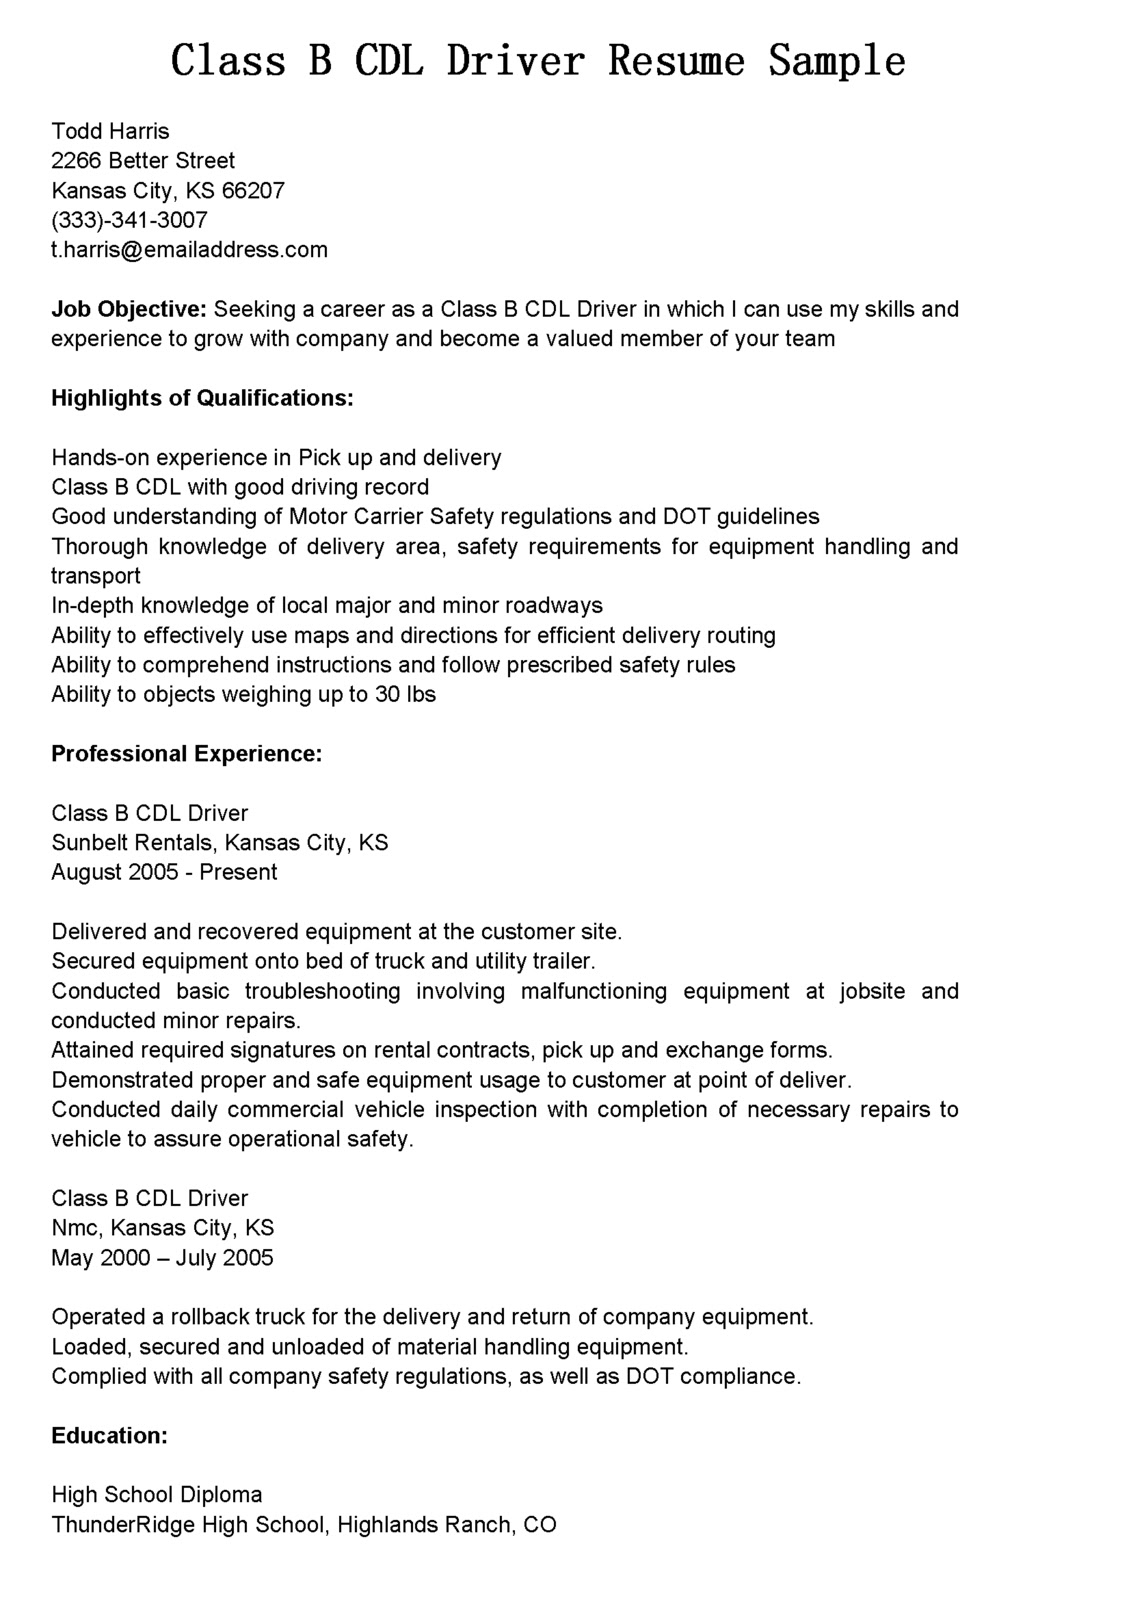 Truck driver resume example.